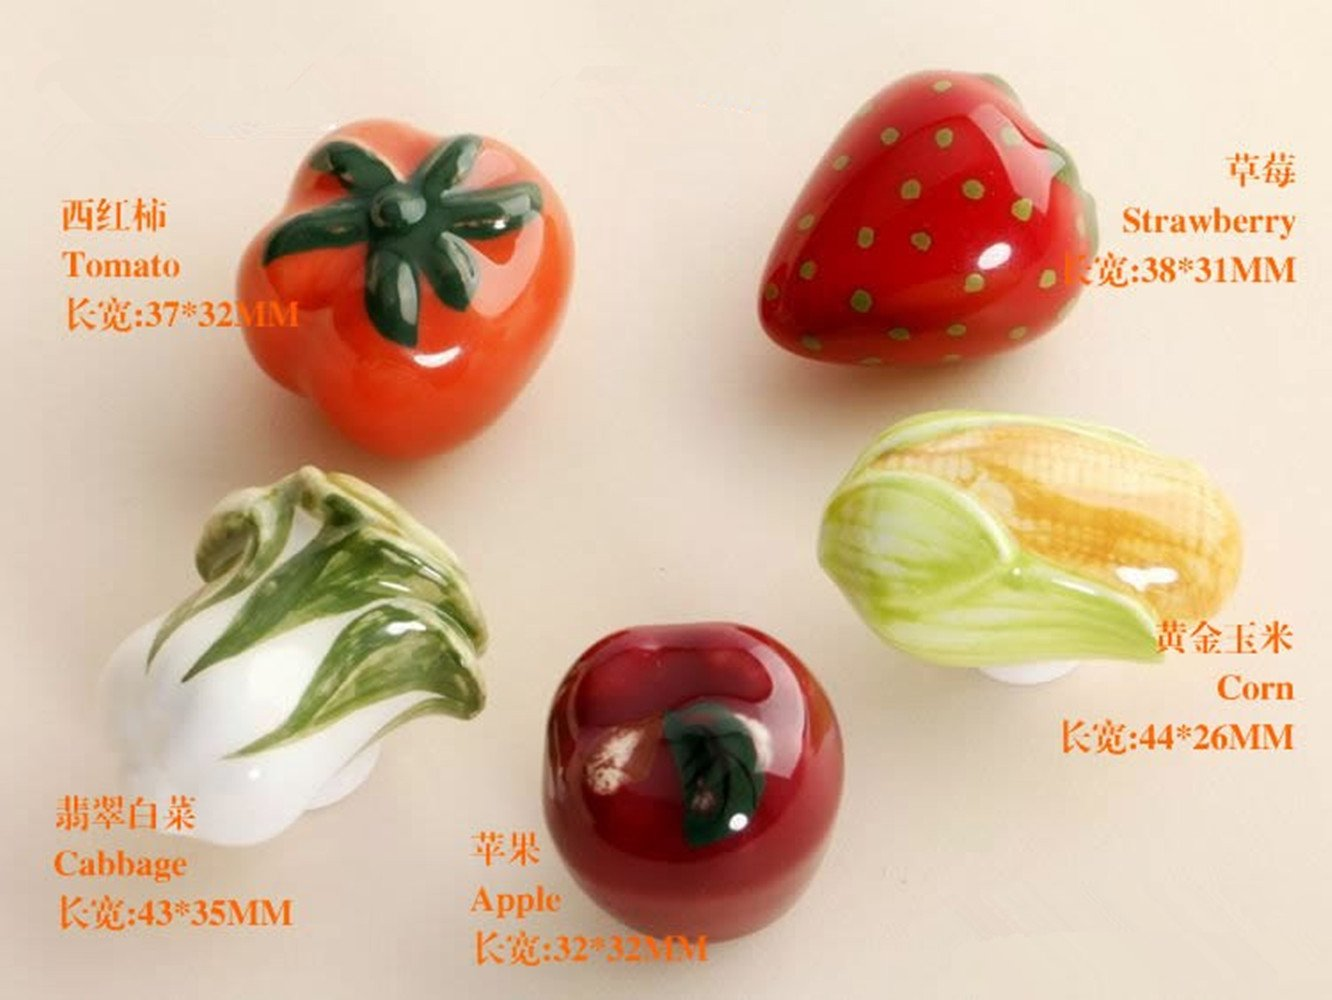 5pcs//Set Ceramics Cabbages Tomatoes Corn Strawberries Fruits and Vegetables Shape Cabinet knobs and Handles for Childrens Furniture Drawer Handles